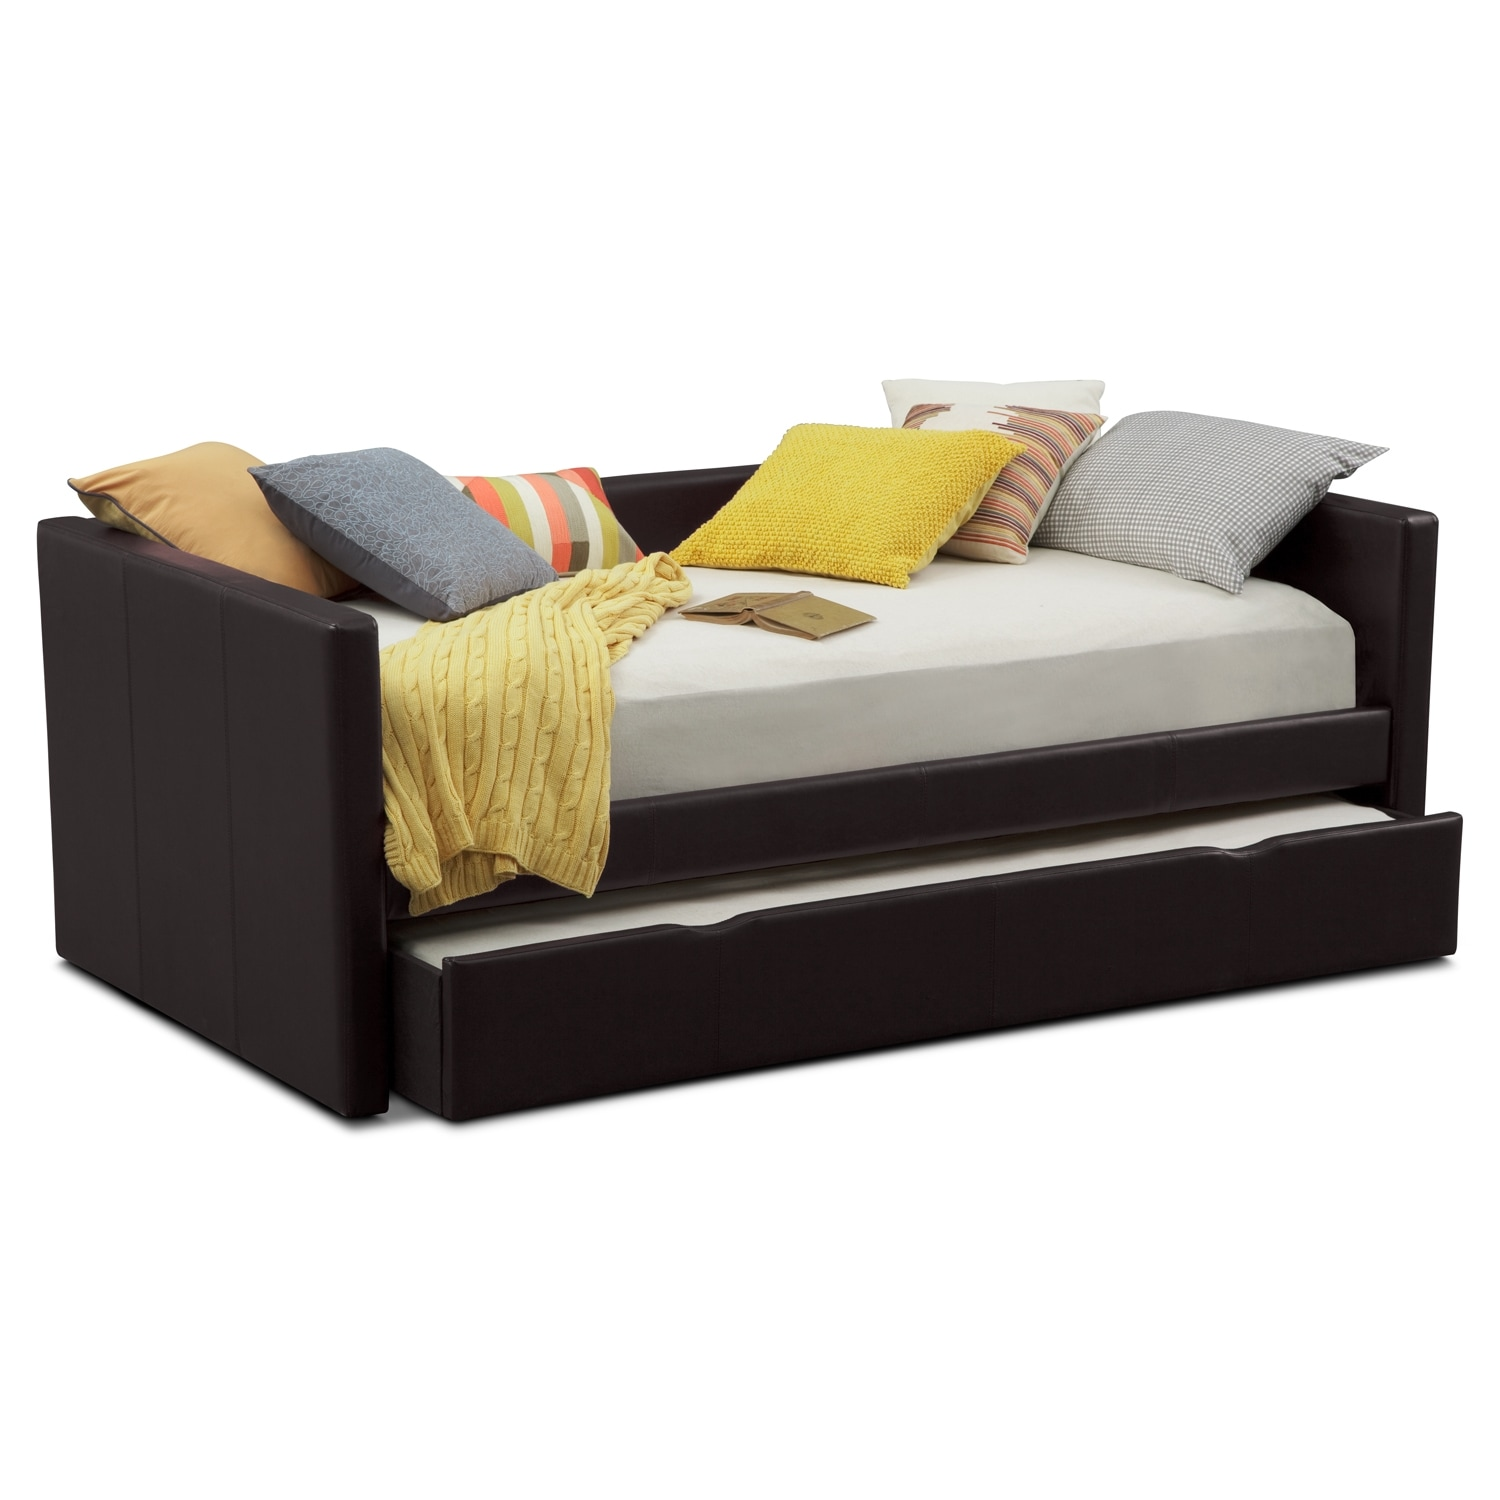 Carey Full Daybed with Trundle - Brown | American Signature Furniture